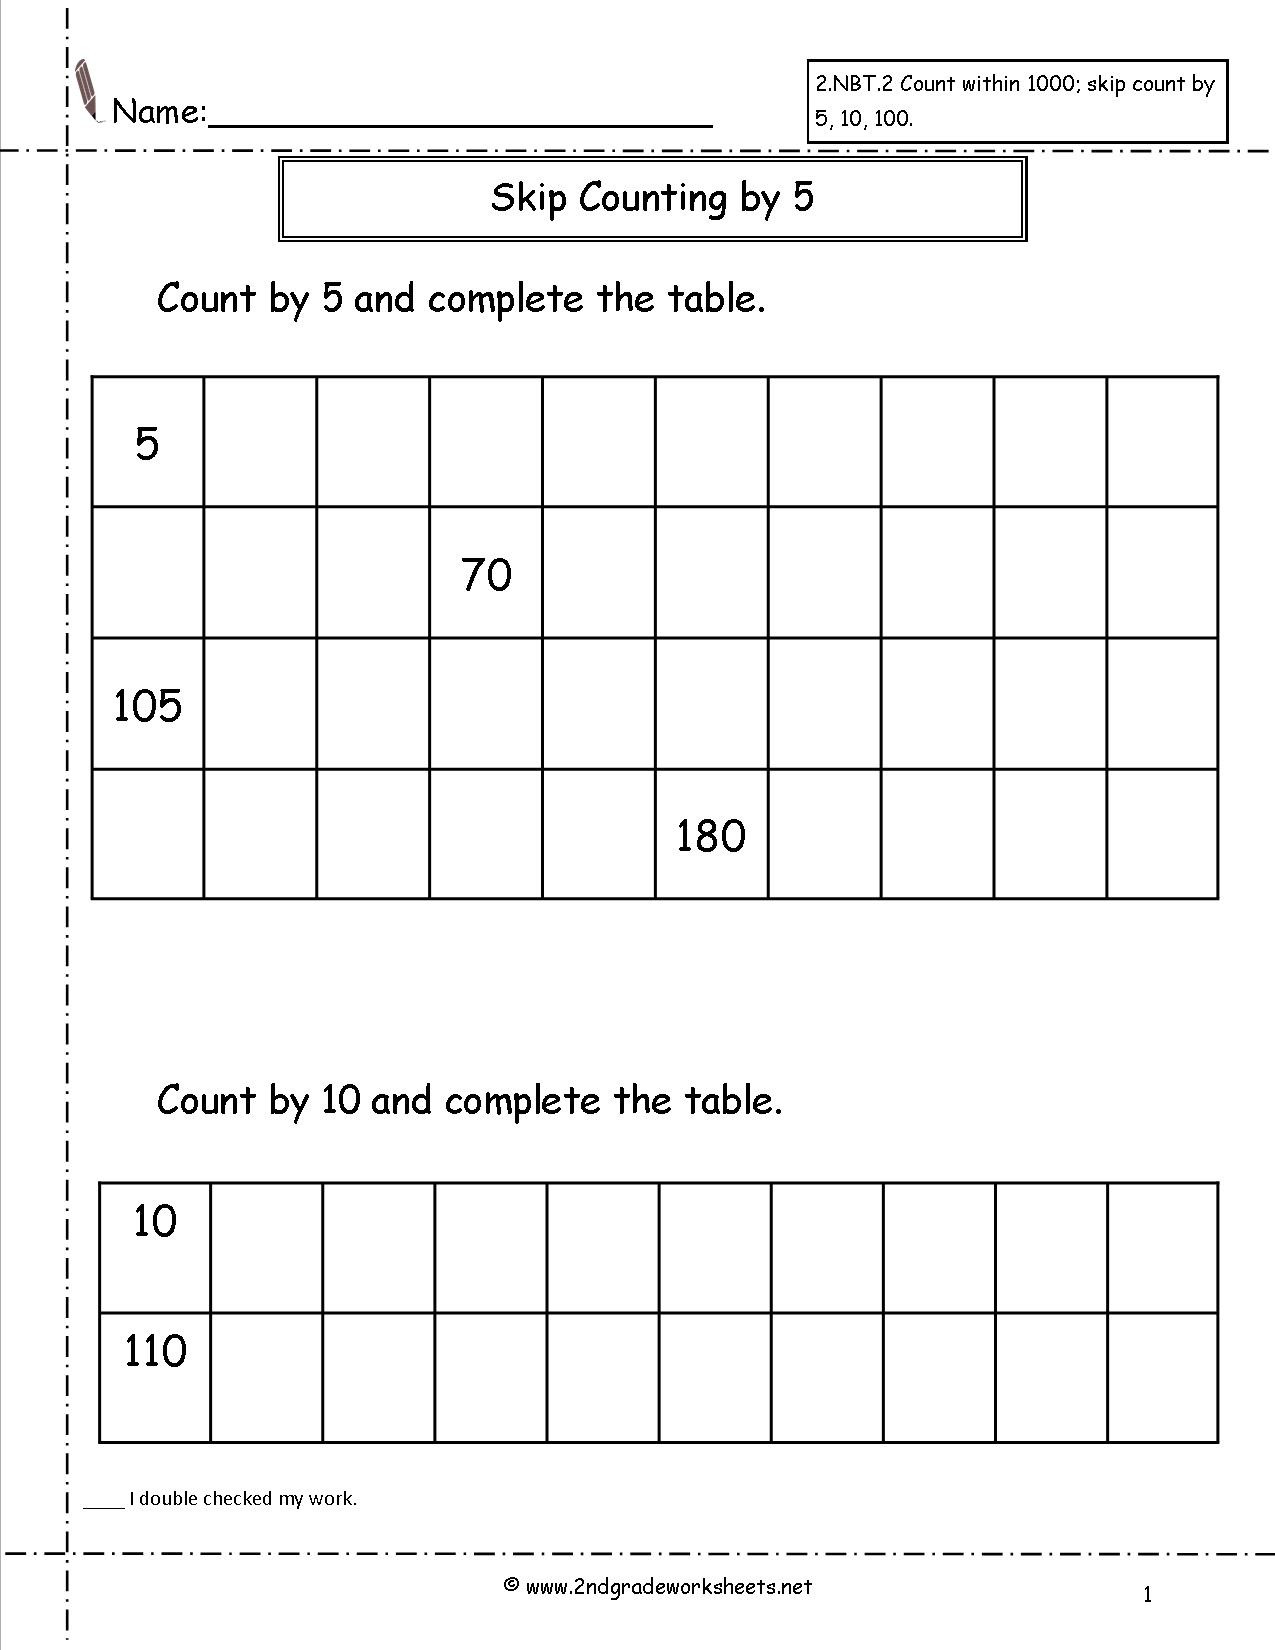 Skip Counting Worksheets 3rd Grade Blank Grid Printable Sixth Grade Math Worksheets Counting by